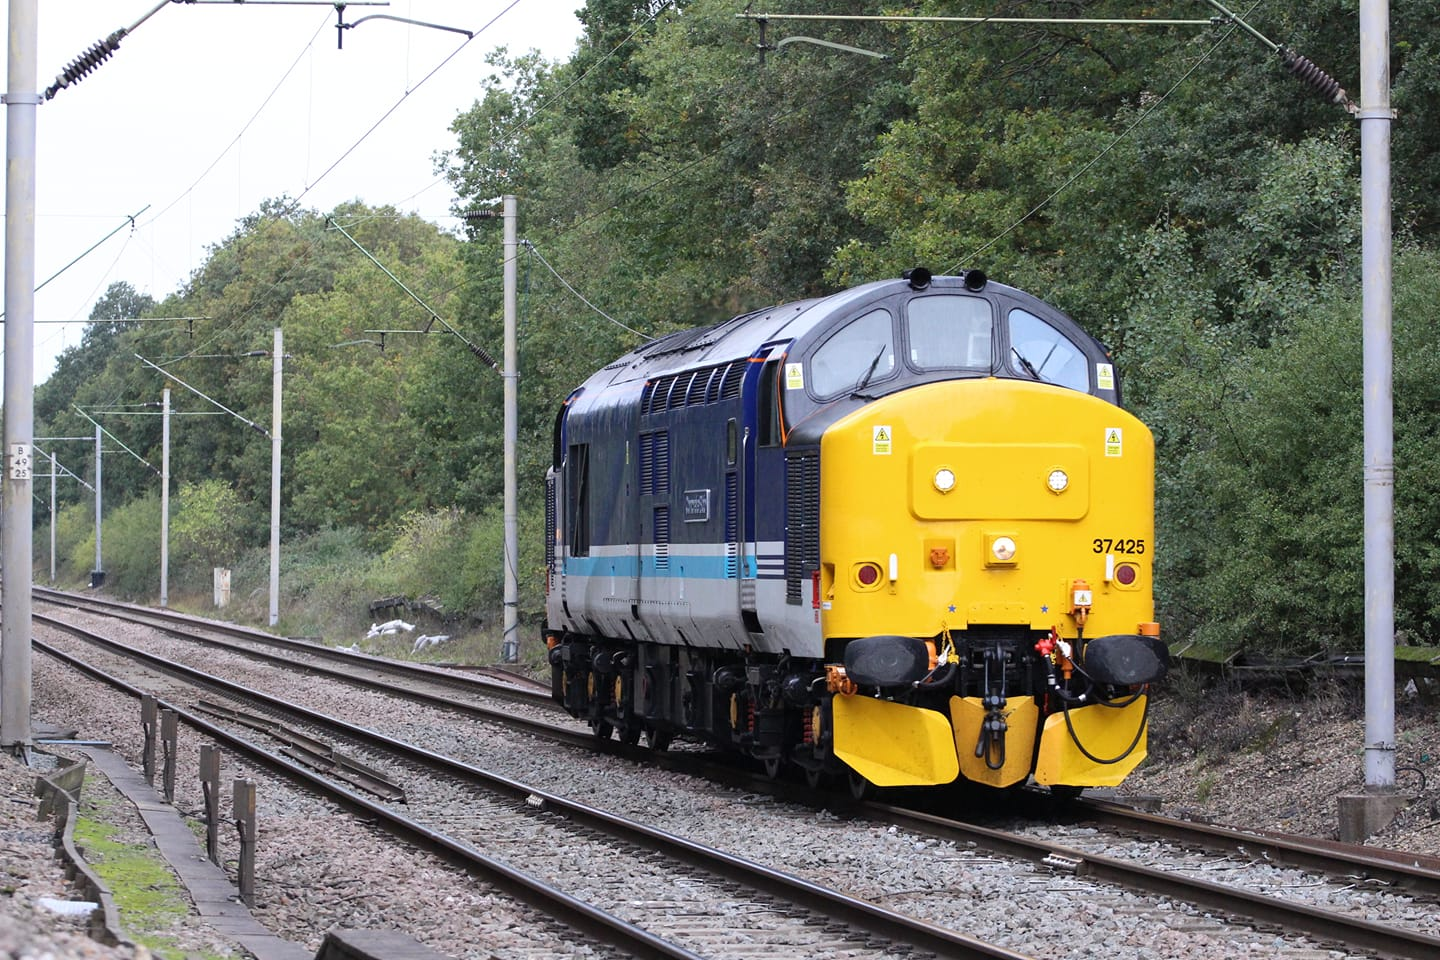 37425 'CONCRETE BOB' DRS 0Z25 PLYMOUTH-NORWICH (CHITTS HILL) 9-10-20 (JAMES COLE)